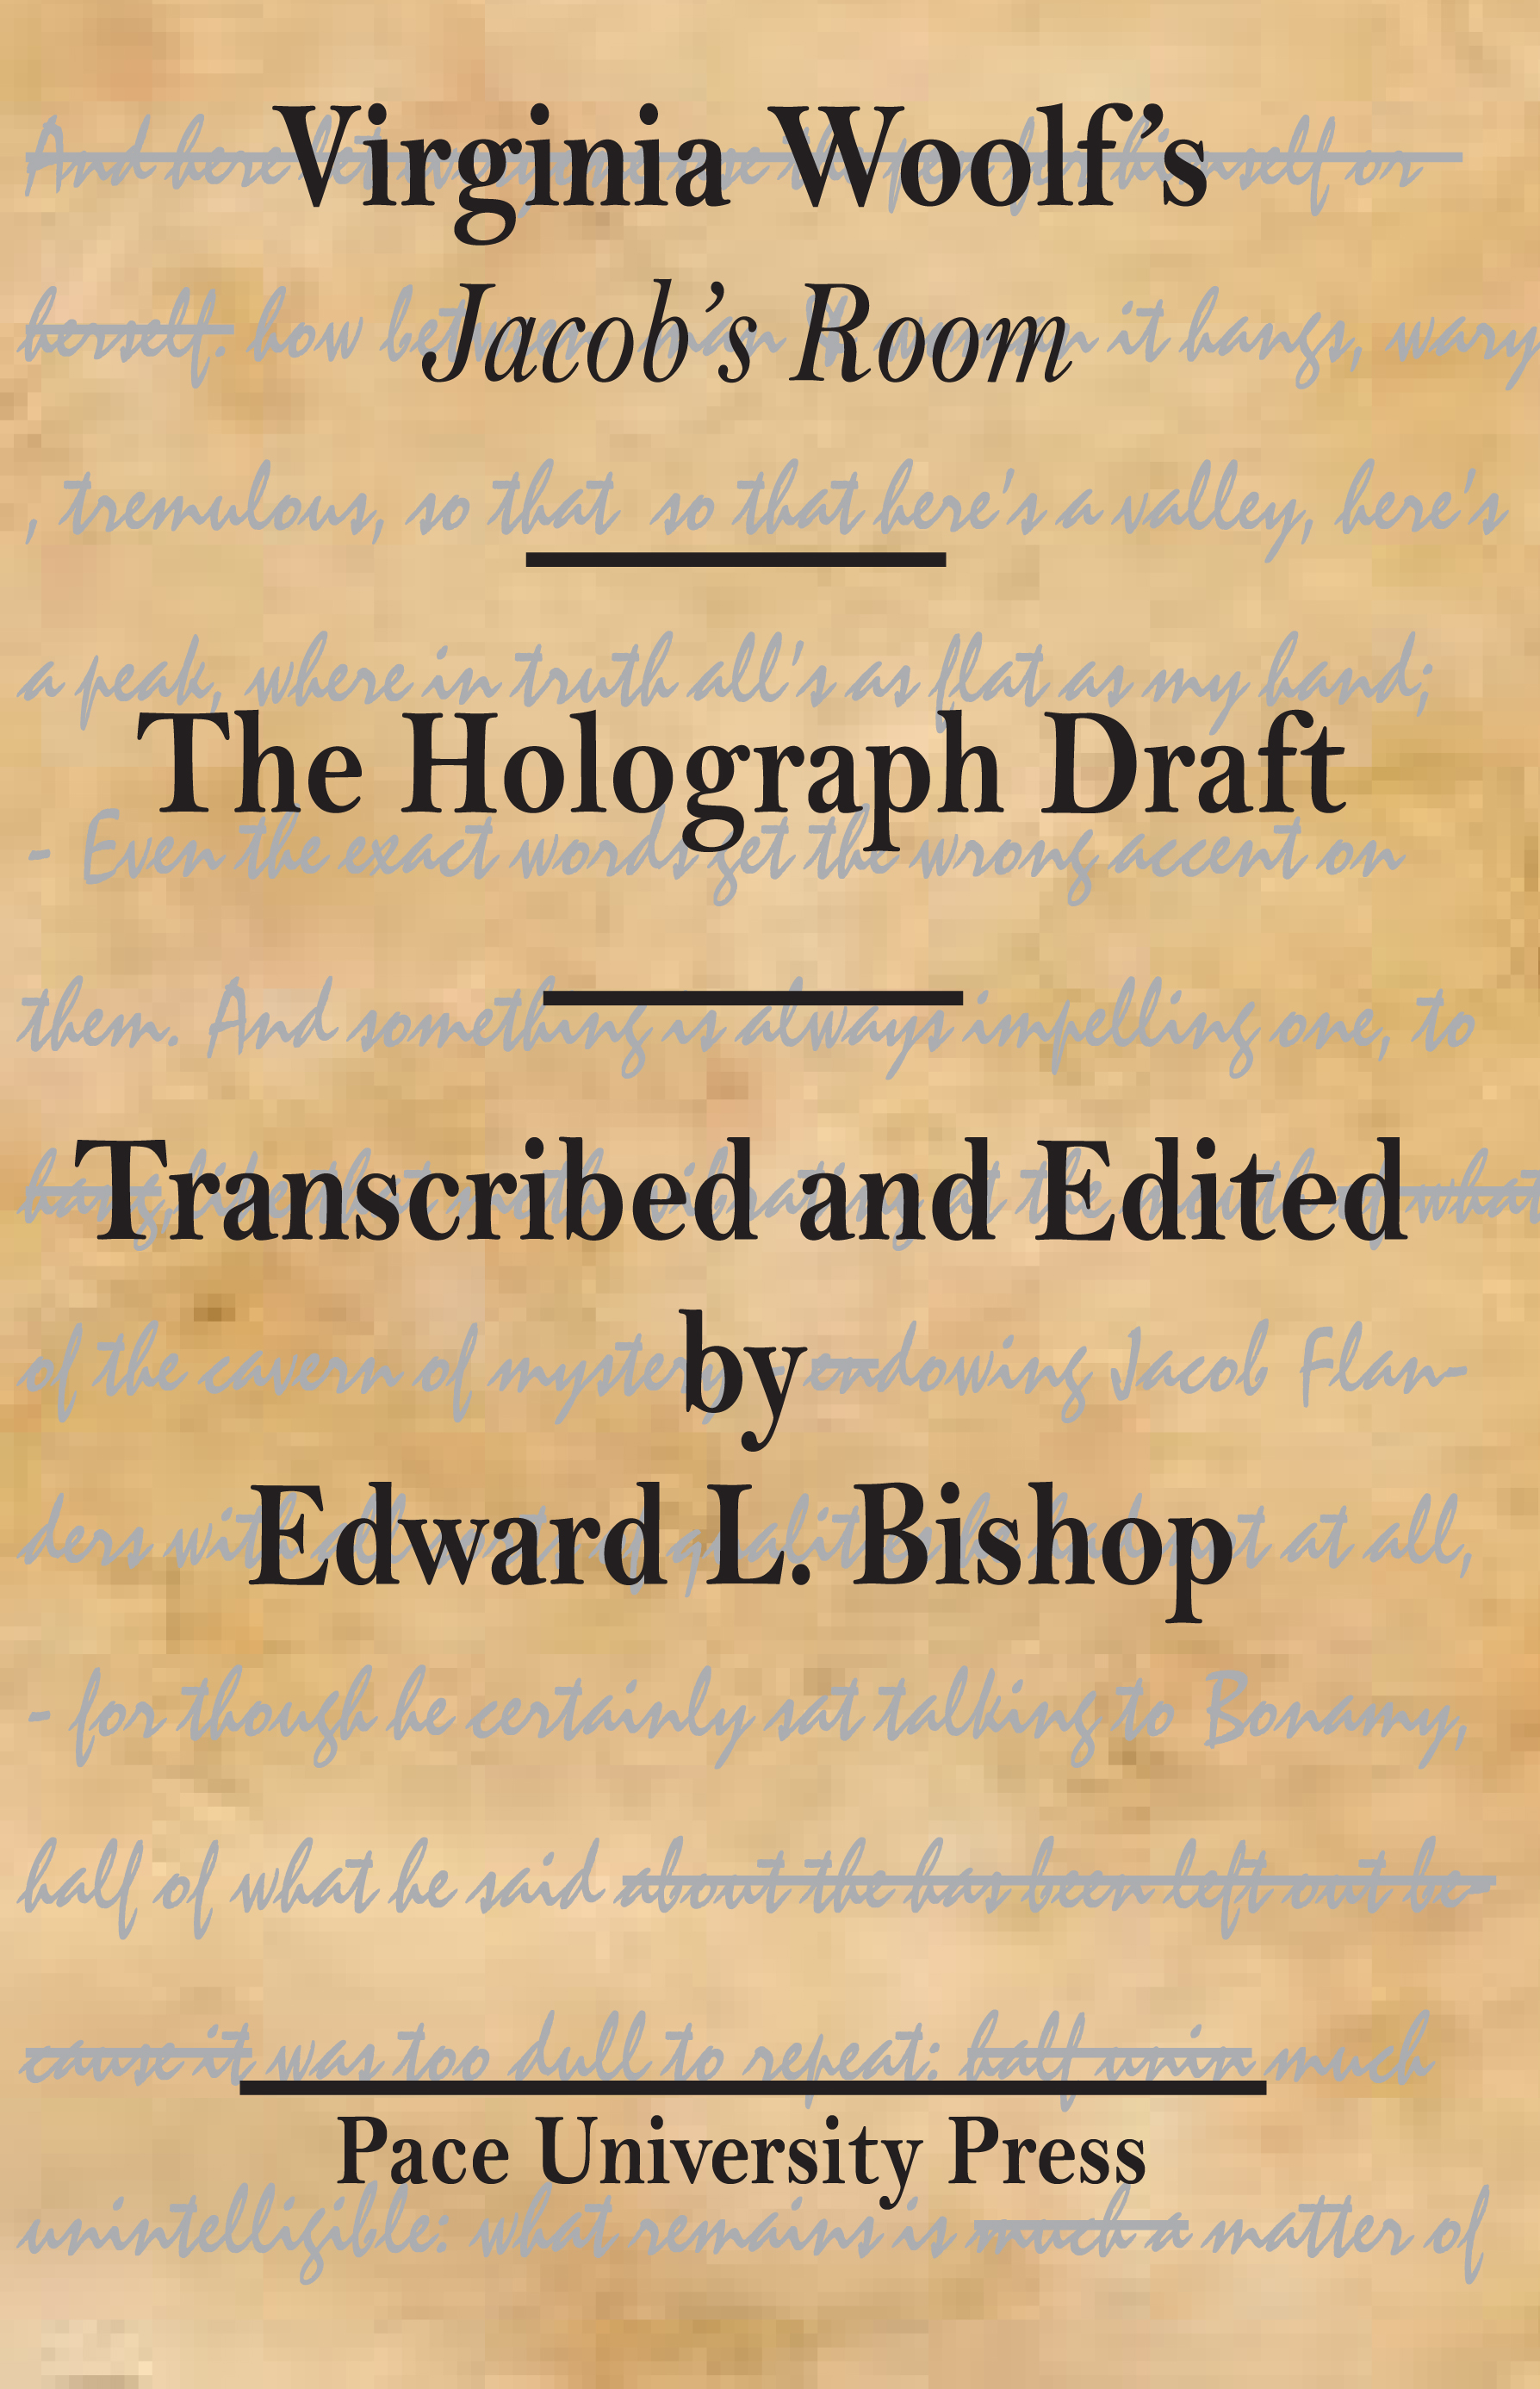 Jacob's Room: The Holograph Draft